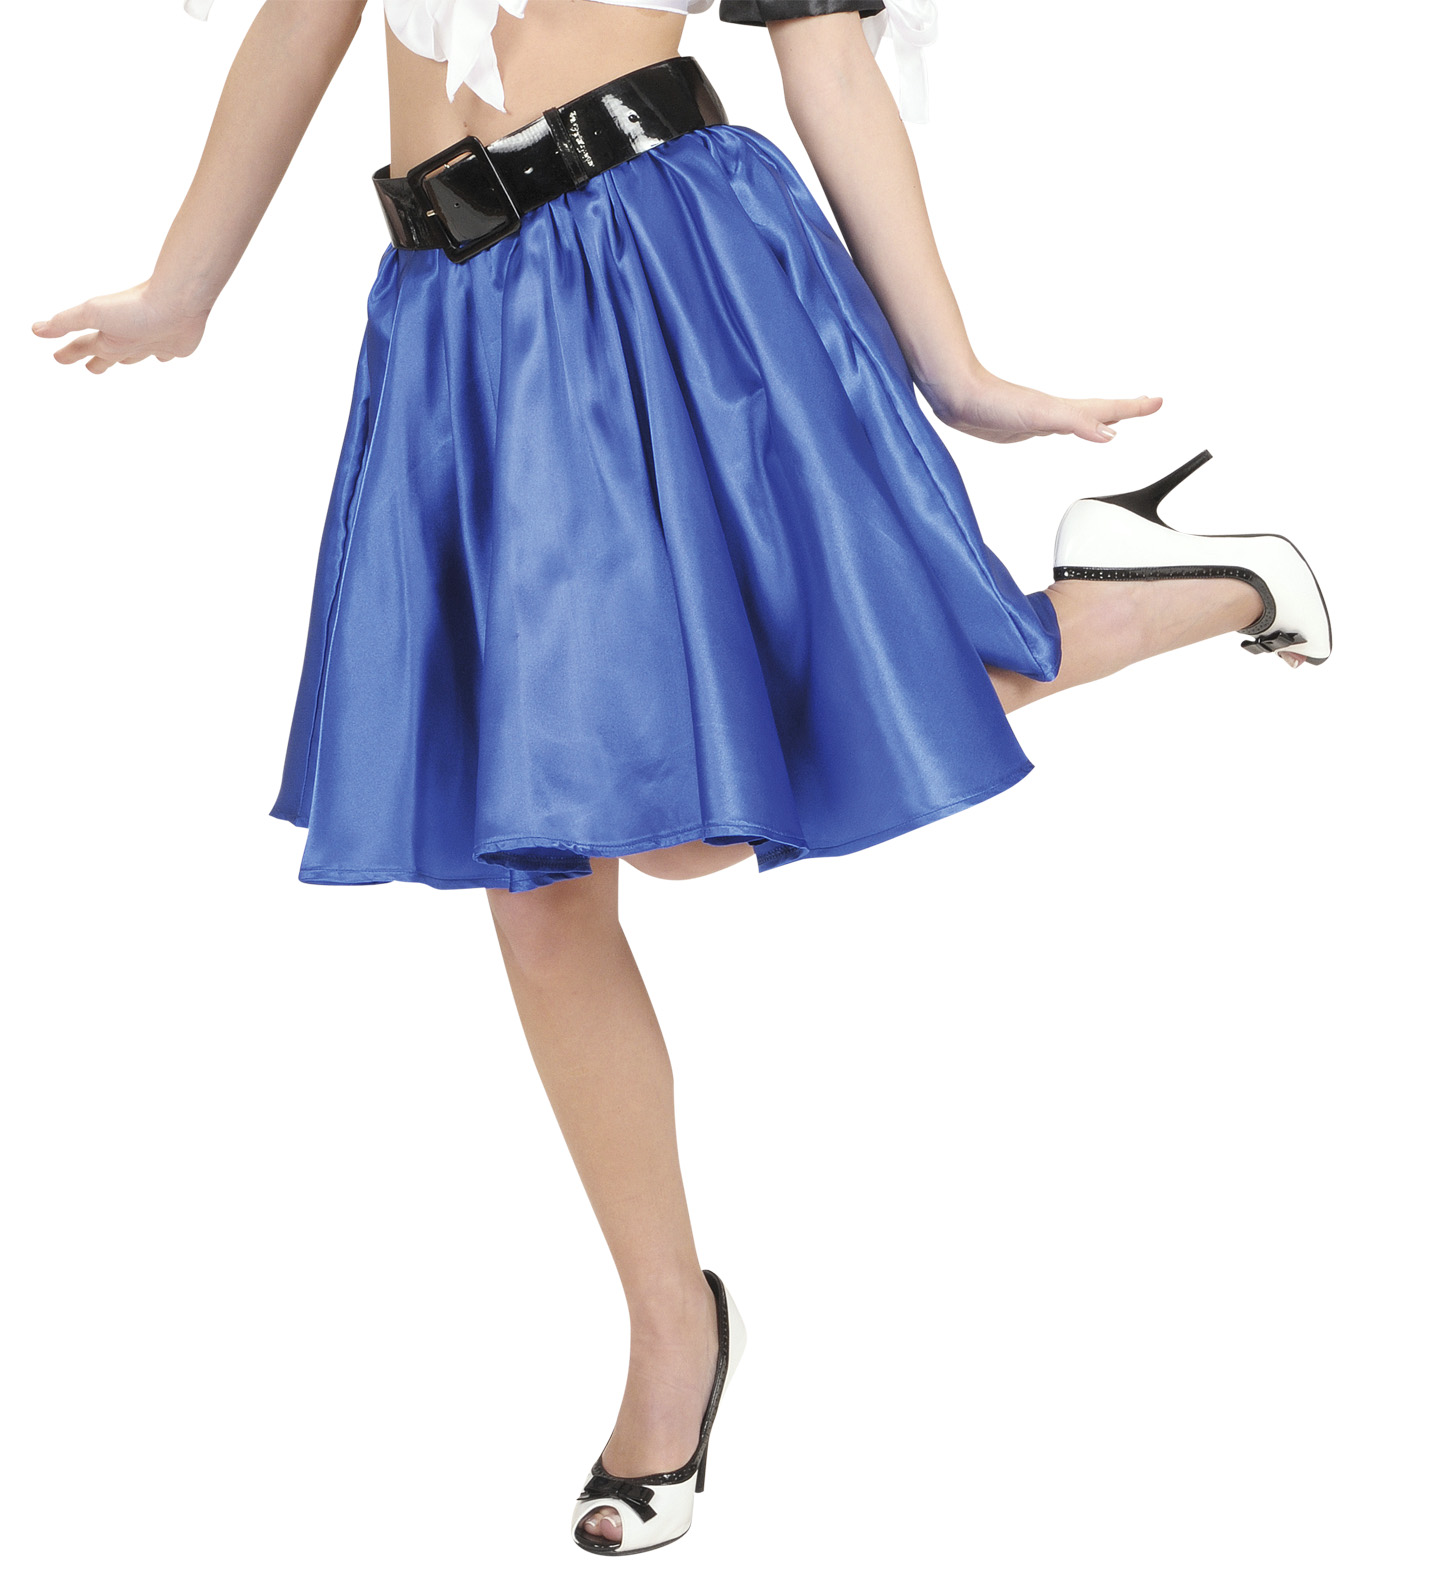 Blue Satin Skirts with Sewn-In Petticoat 50s Fancy Dress